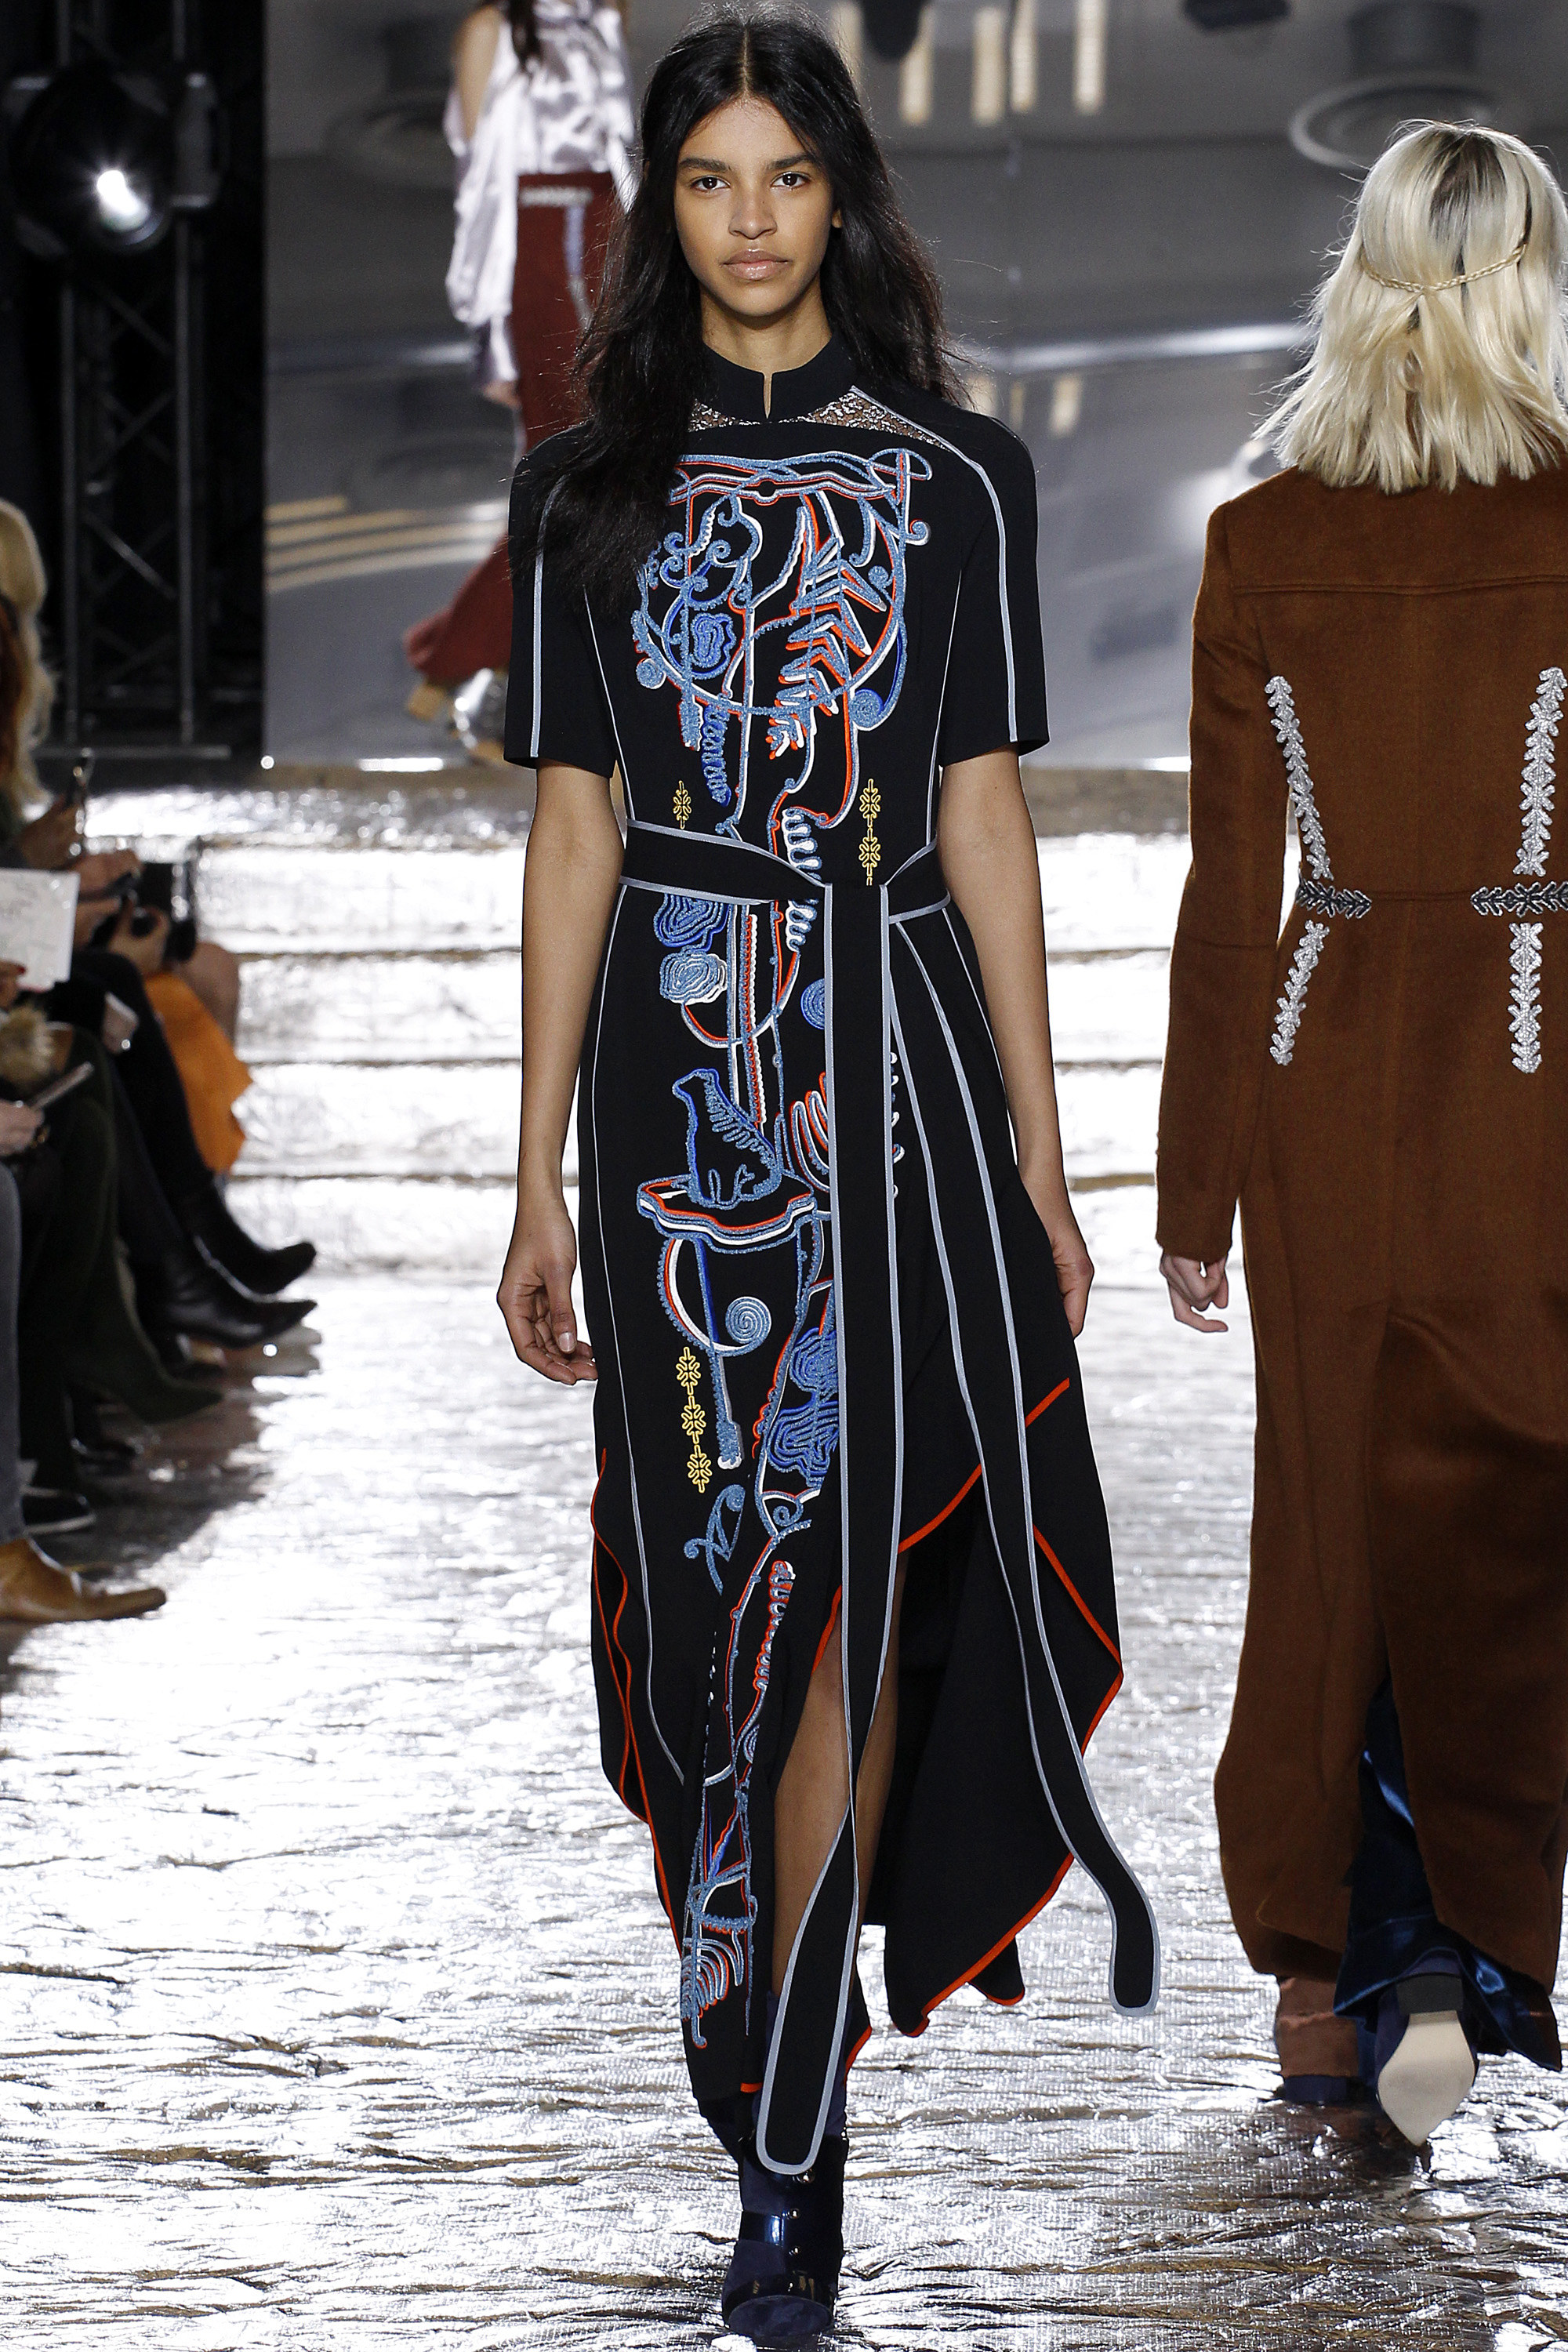 Peter-Pilotto-Autumn-Winter-Fall-2016-London-Fashion-Week-3.jpg